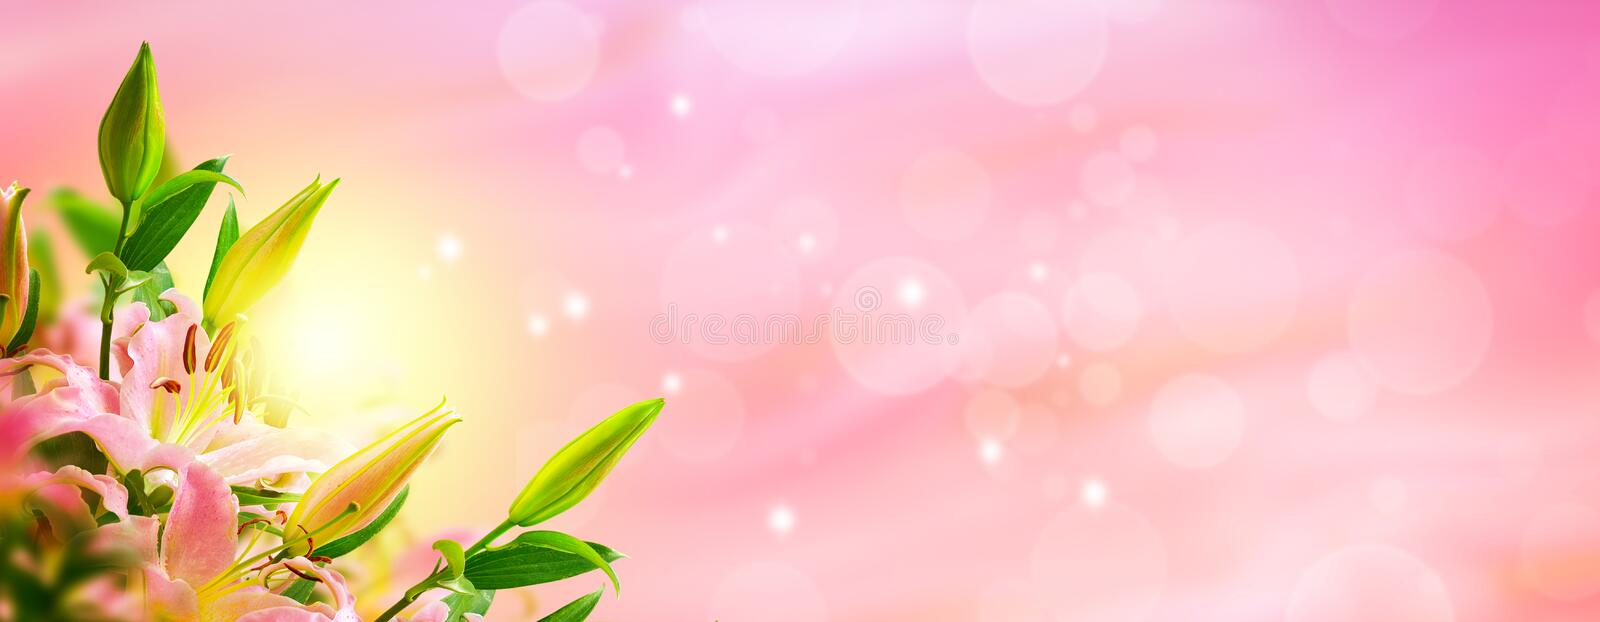 Lily flower blooming bouquet panorama. Greeting card background. Toned image. Template background stock photo